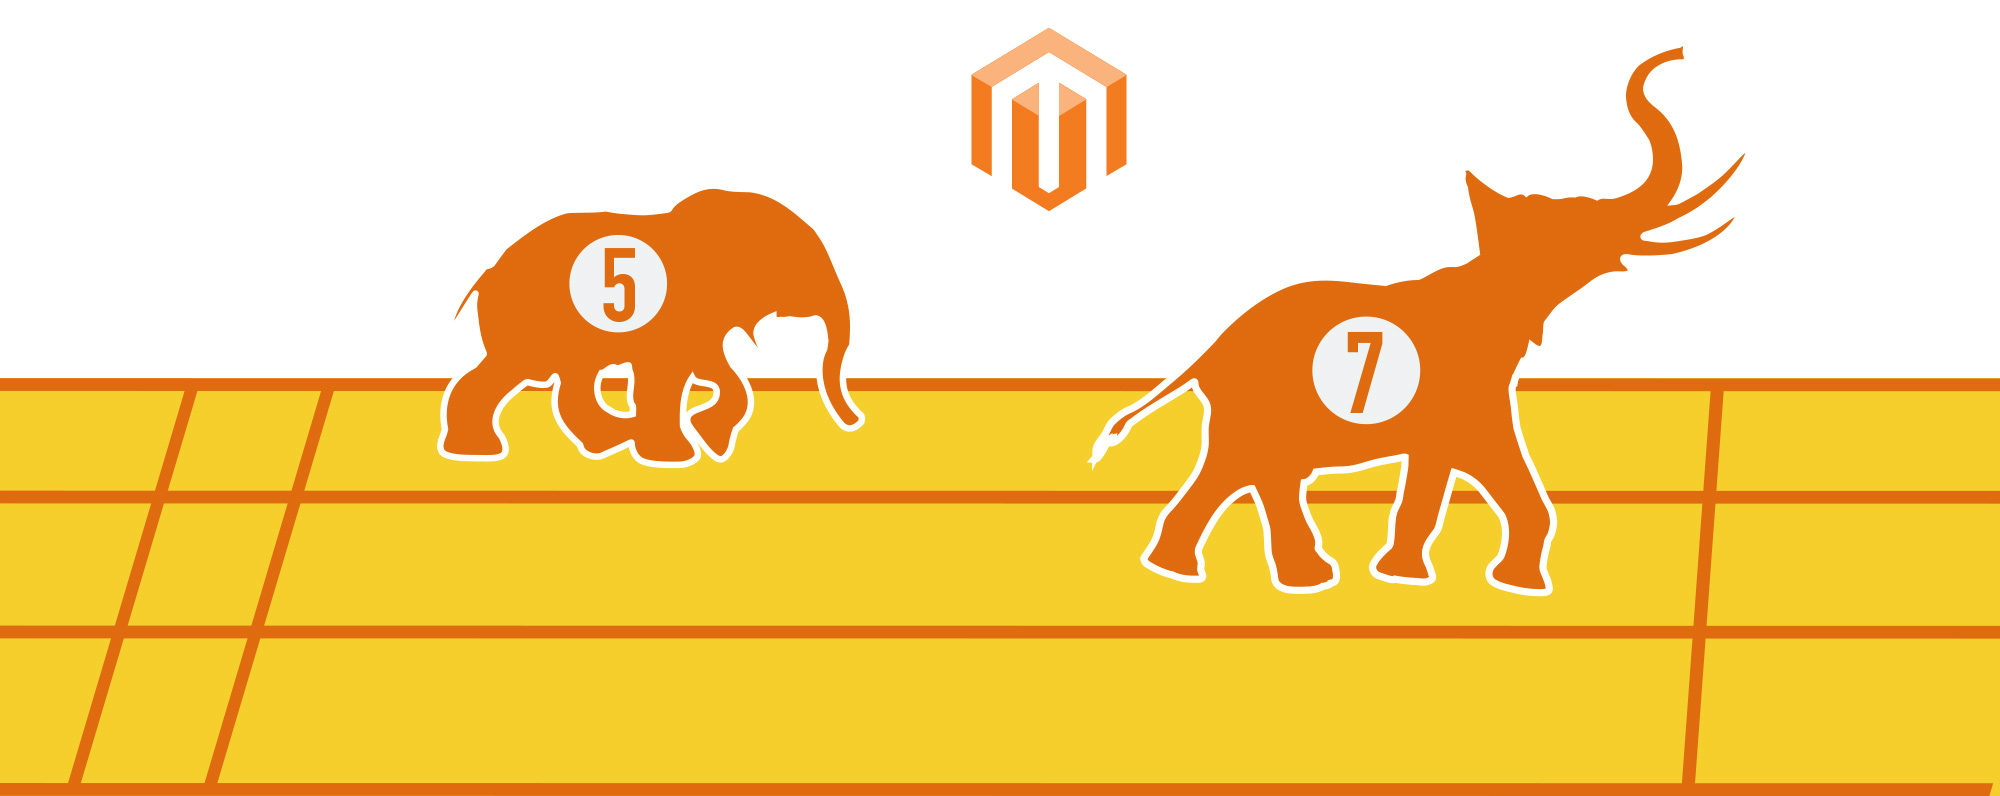 PHP 7 in Magento 2